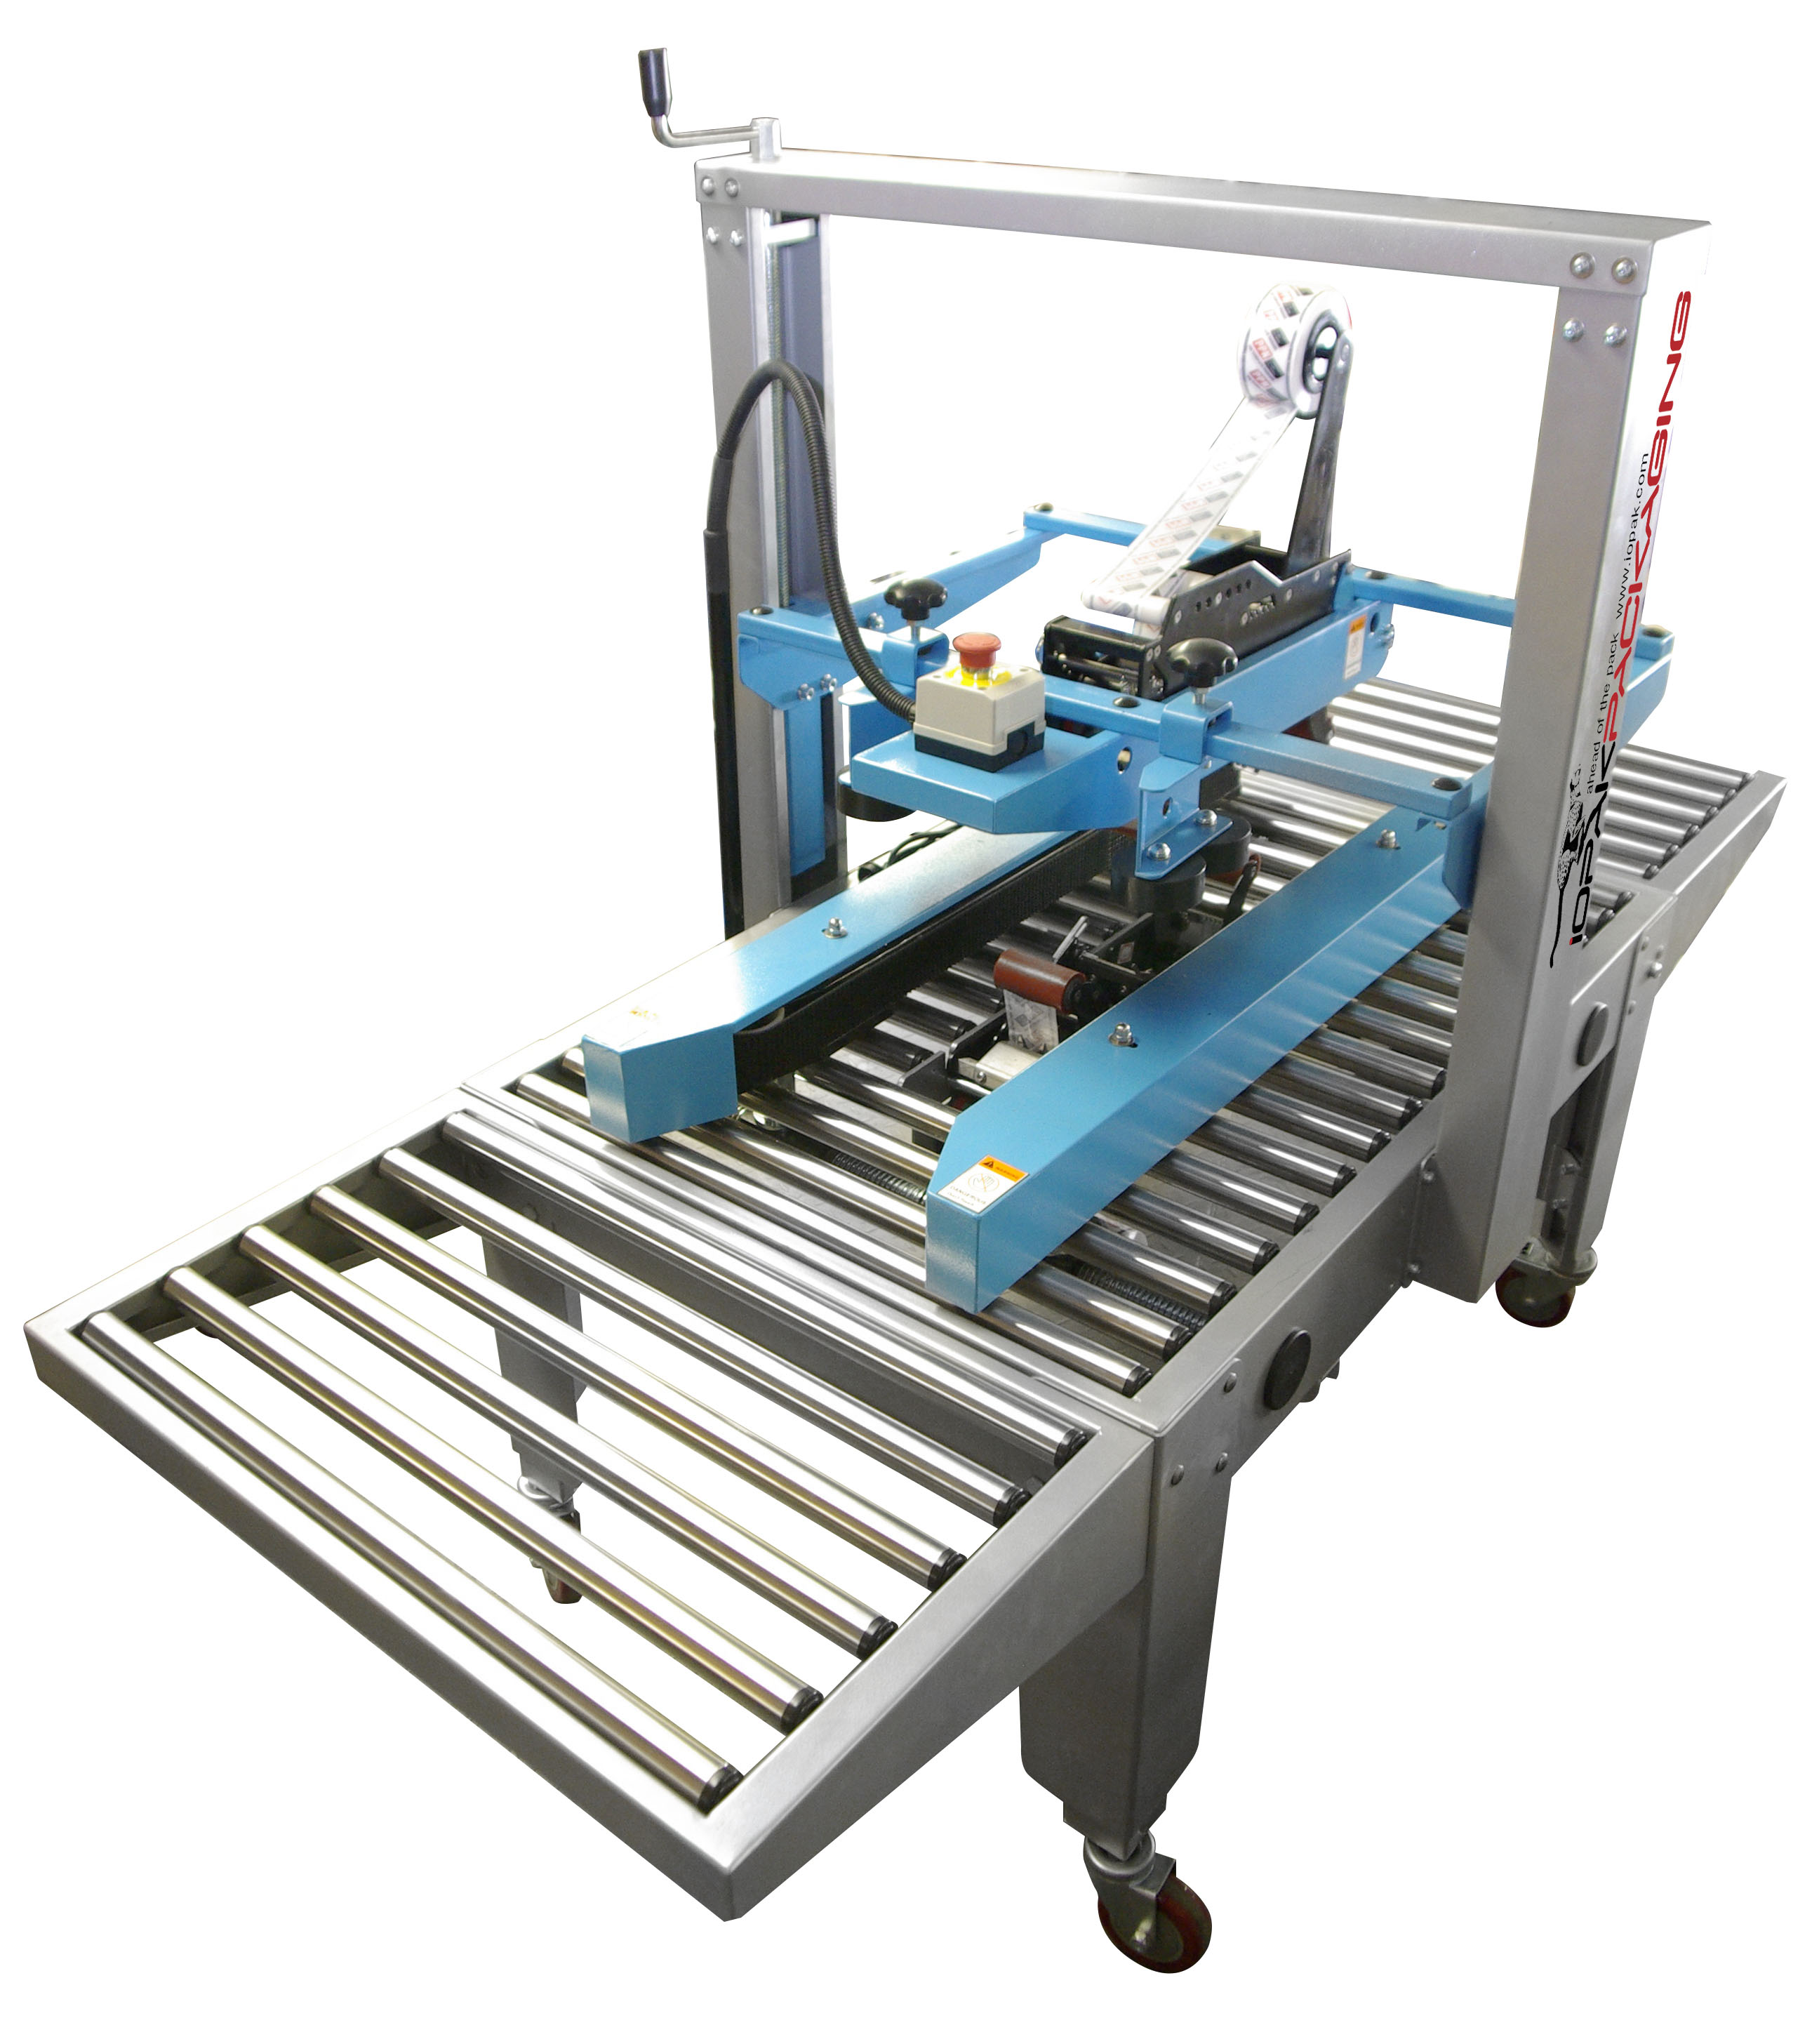 SD 5050 PLUS IOPAK PLUS Side Drive Carton TaperIOPAK Side Drive Carton Taper. Model No.:SD 5050 X